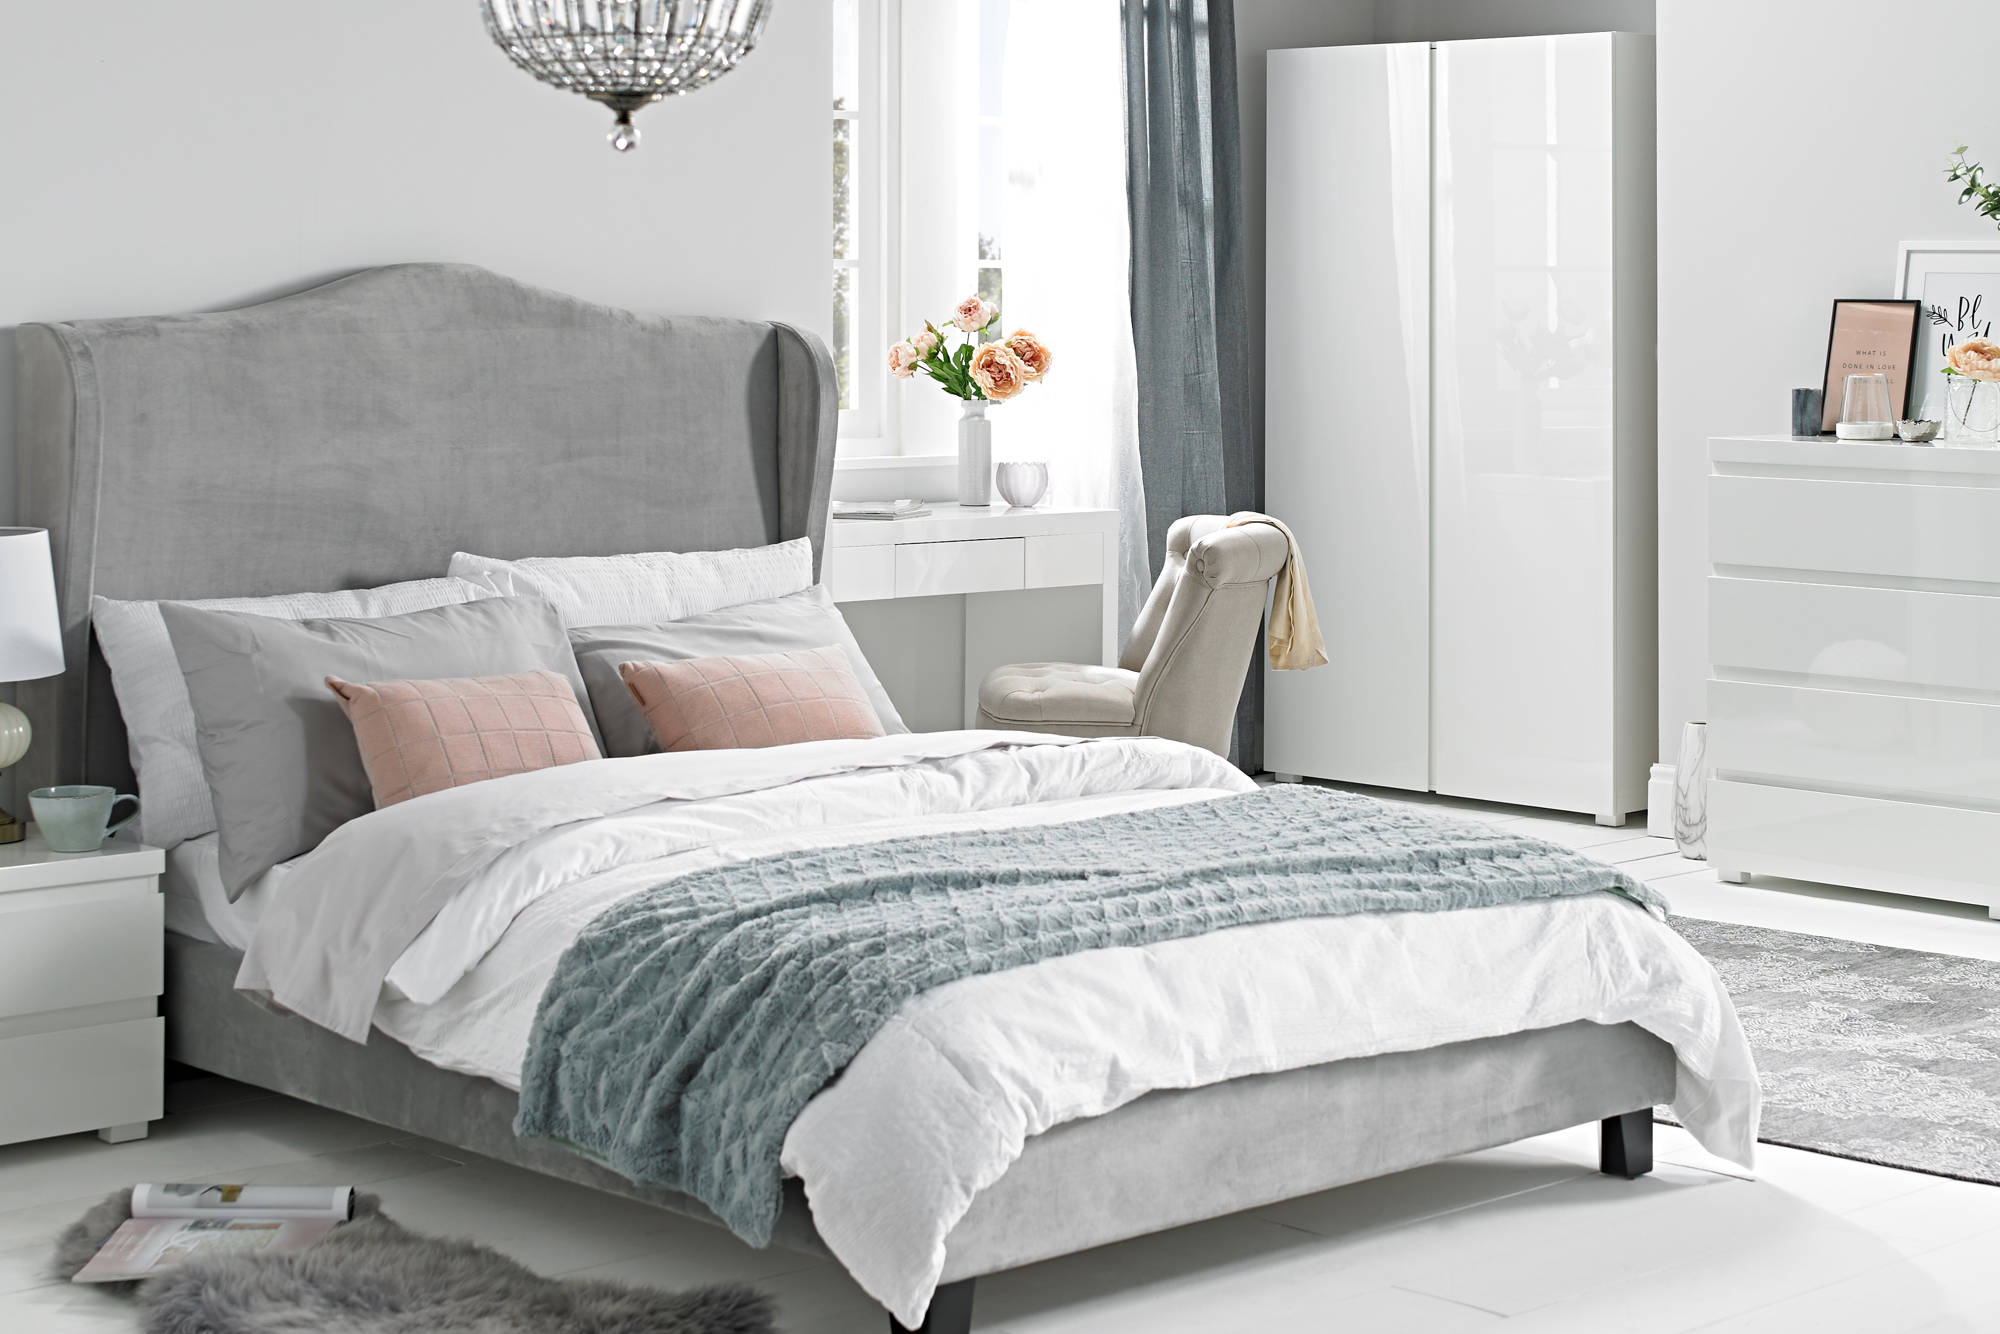 Cheverny Double Bed in Silver - Ezzo